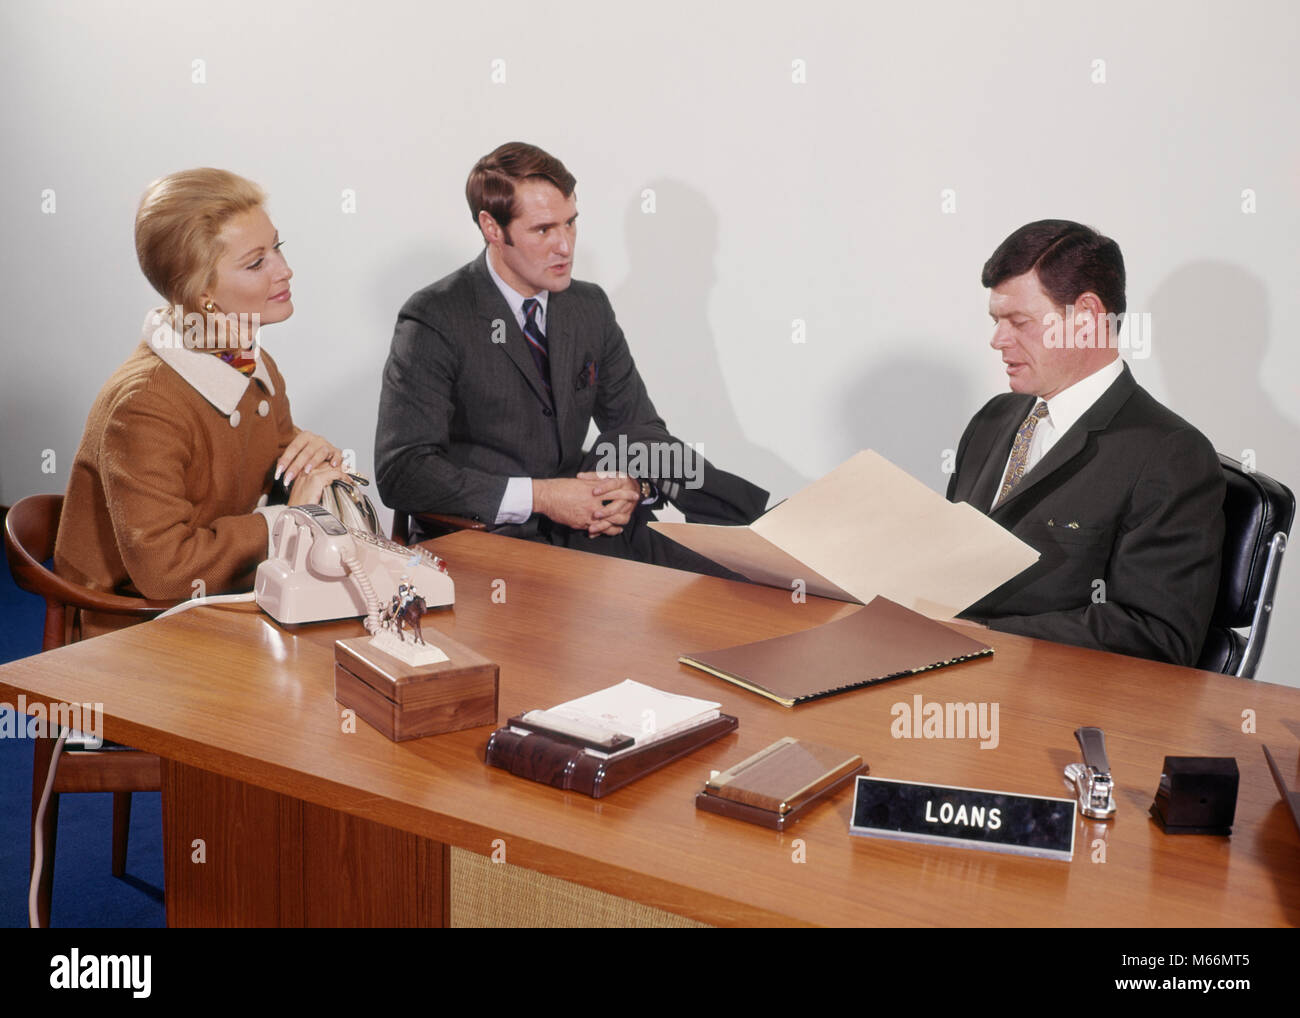 1960s COUPLE BEING INTERVIEWED BY BANK LOAN OFFICER - ko340 HAR001 HARS INFORMATION CAUCASIAN LIFESTYLE FEMALES - Stock Image